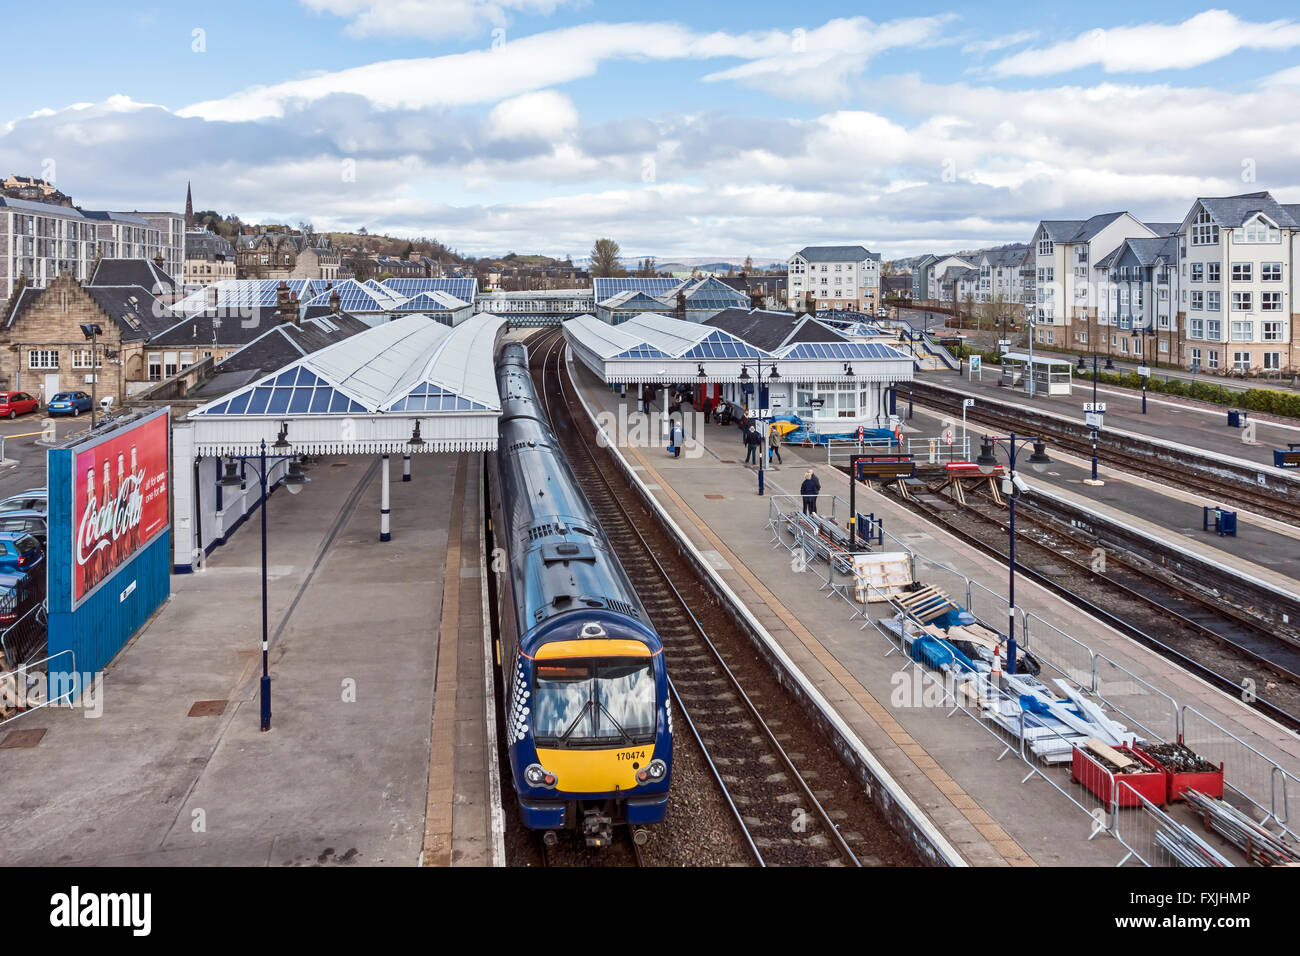 Northbound Scotrail Class 170 DMU arriving at Stirling Railway Station in Stirling Scotland - Stock Image